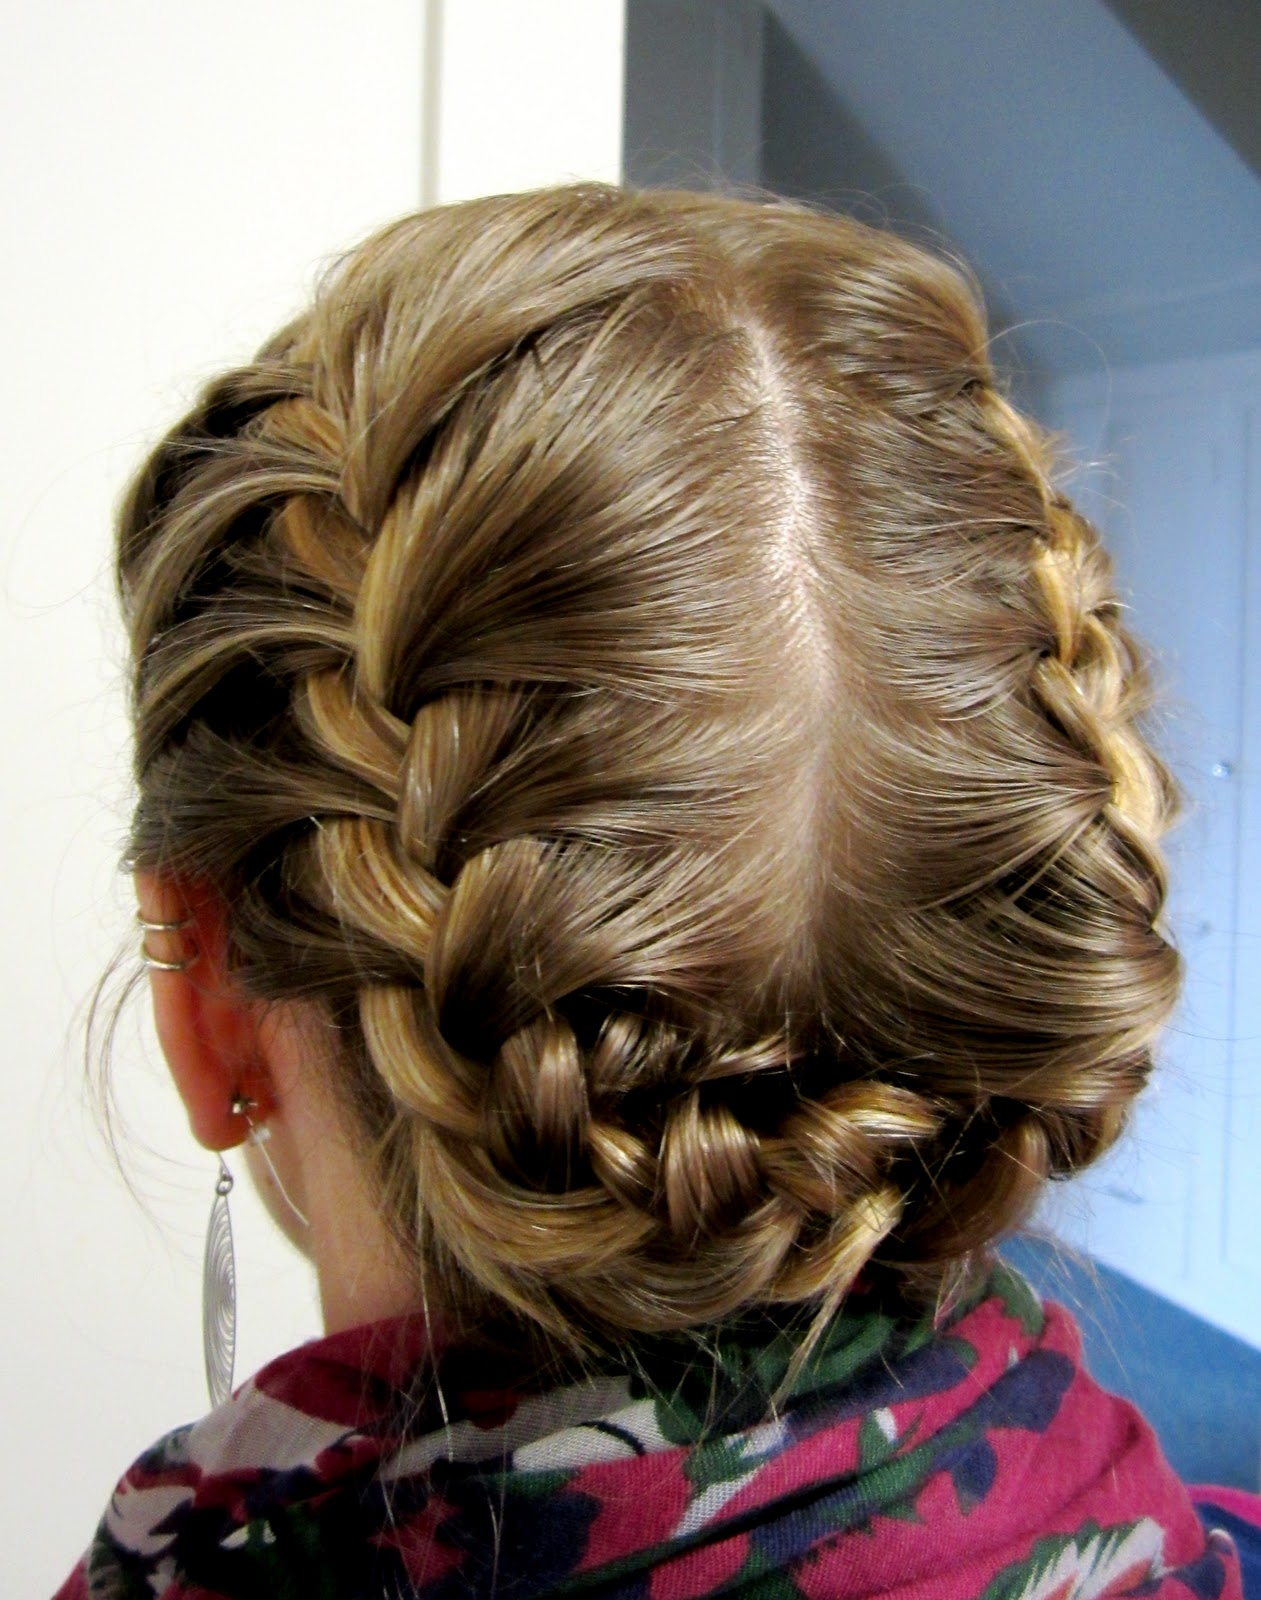 Hairstyle Halo : Bye Bye Beehive ? A Hairstyle Blog: Halo Braid.